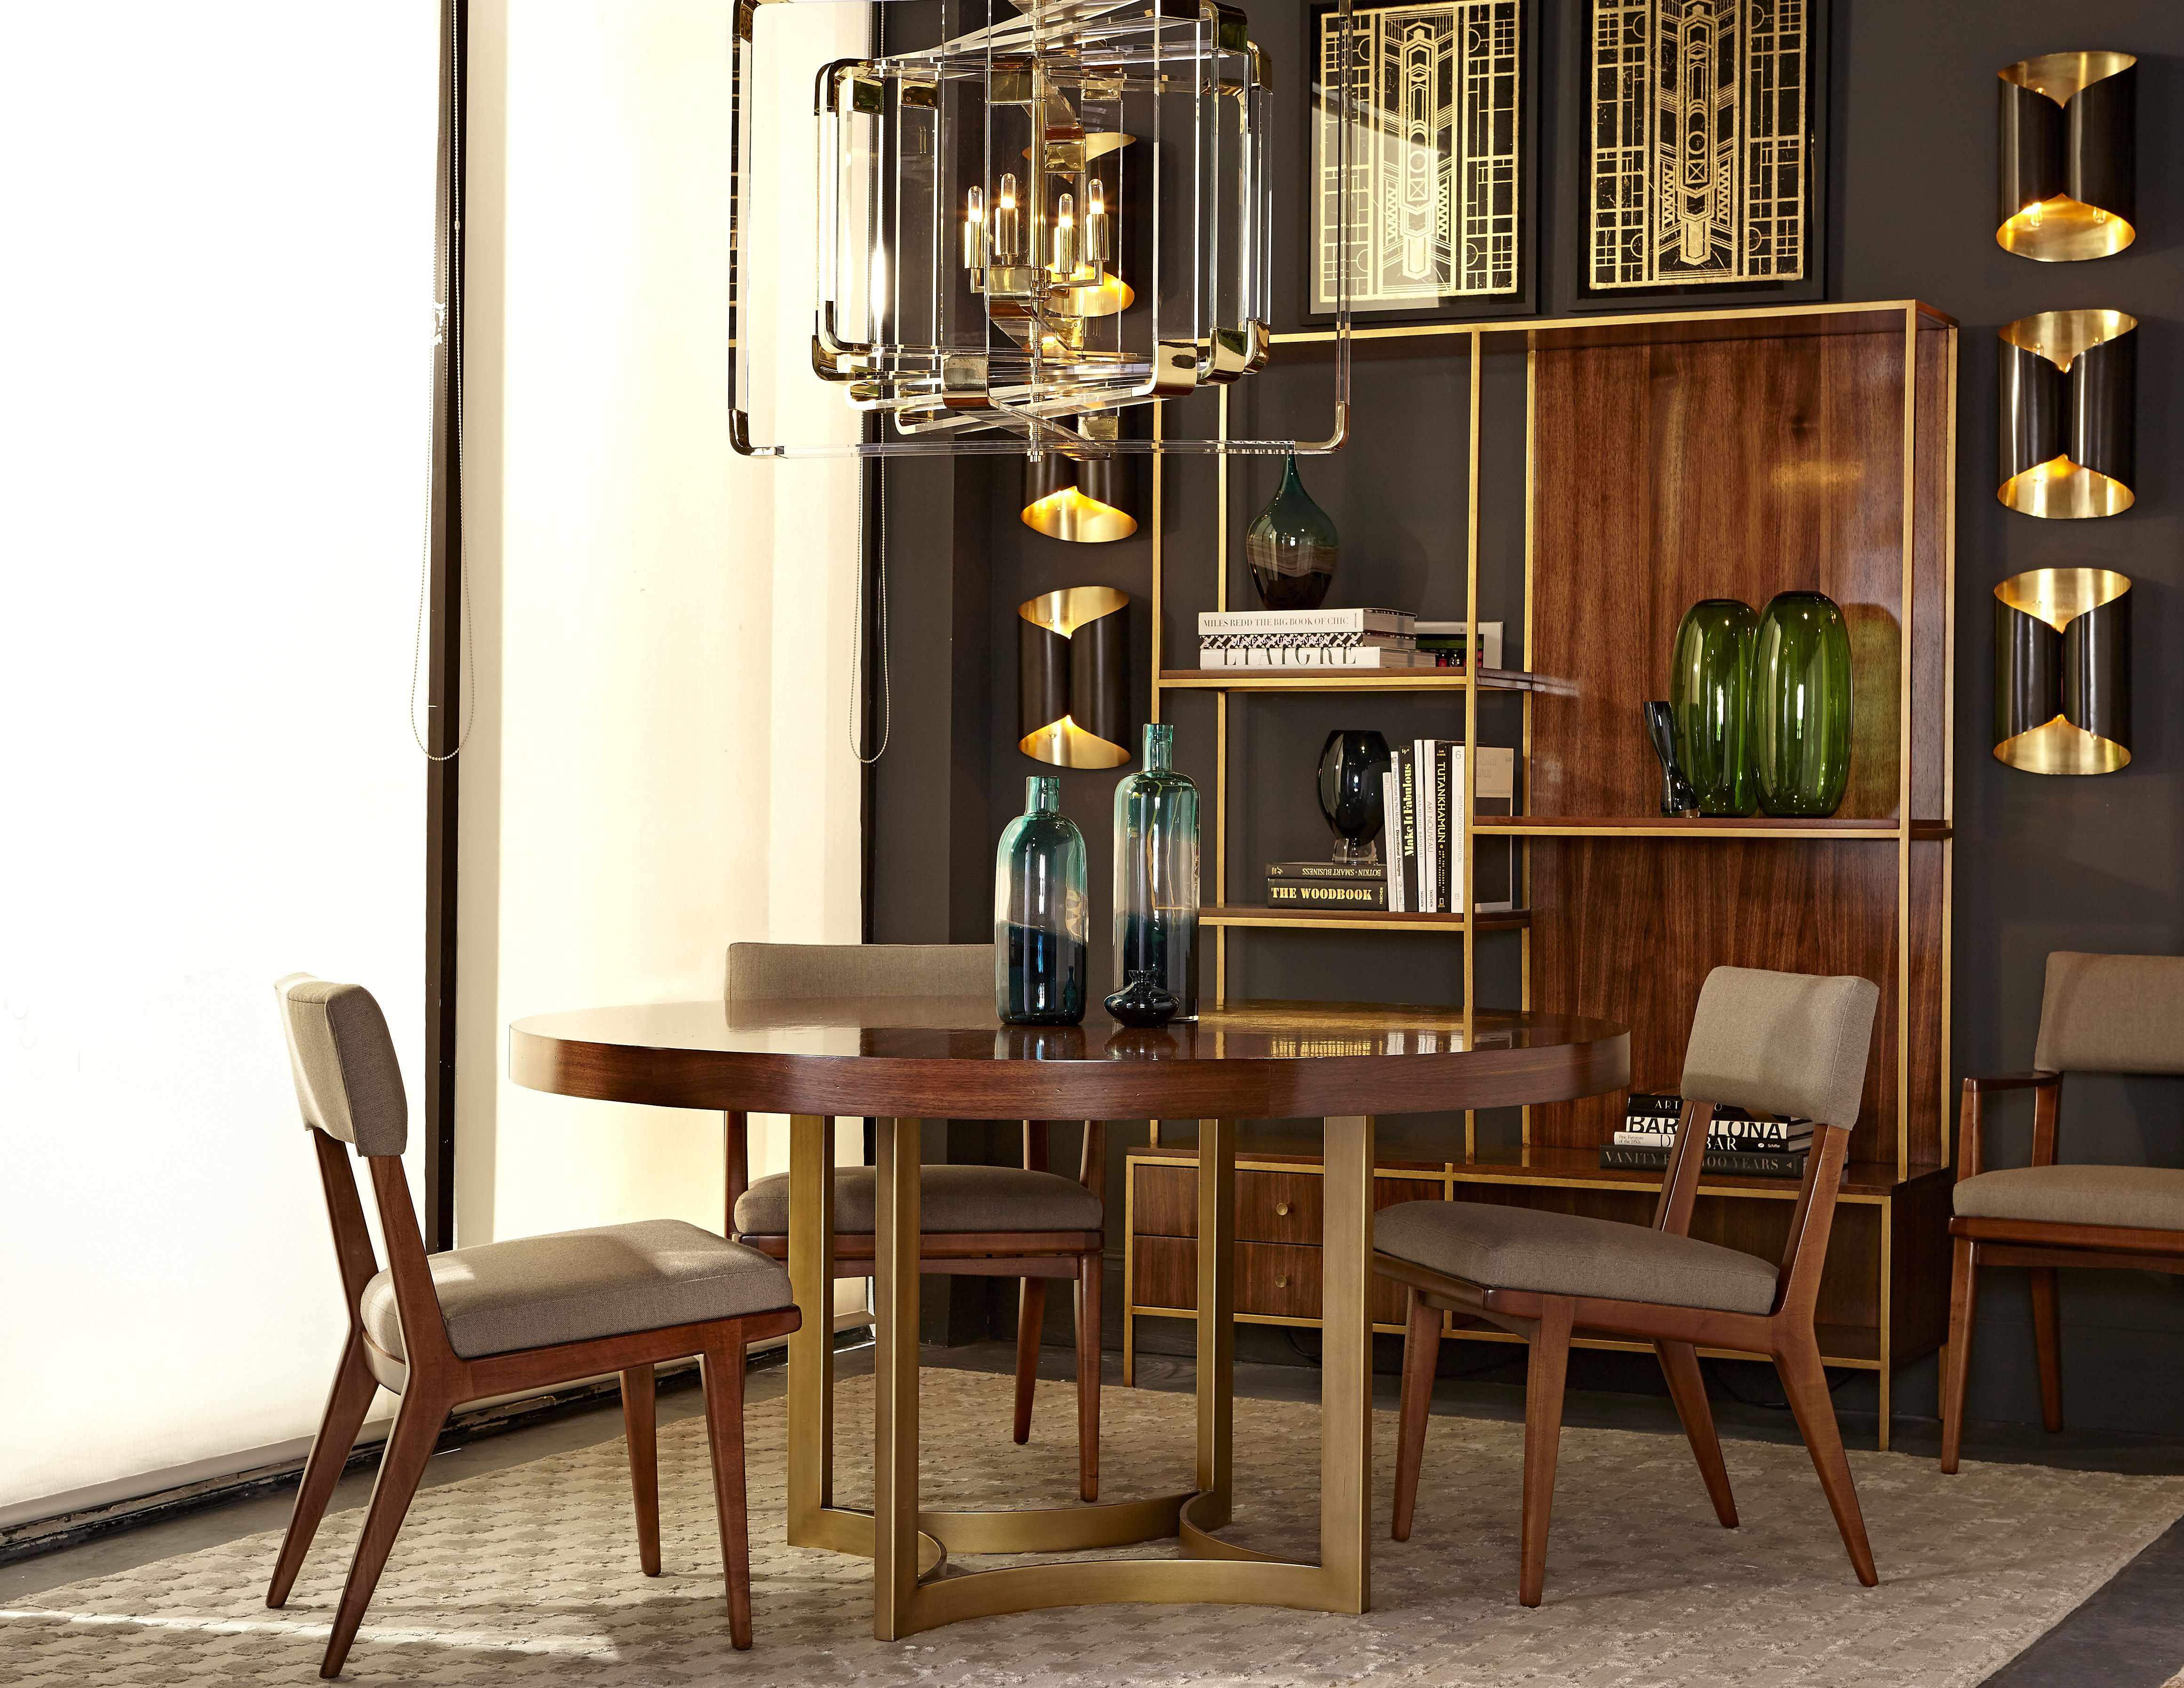 A Modern Mid Century Dining Room From Maison 55 Featuring The Lucas Side